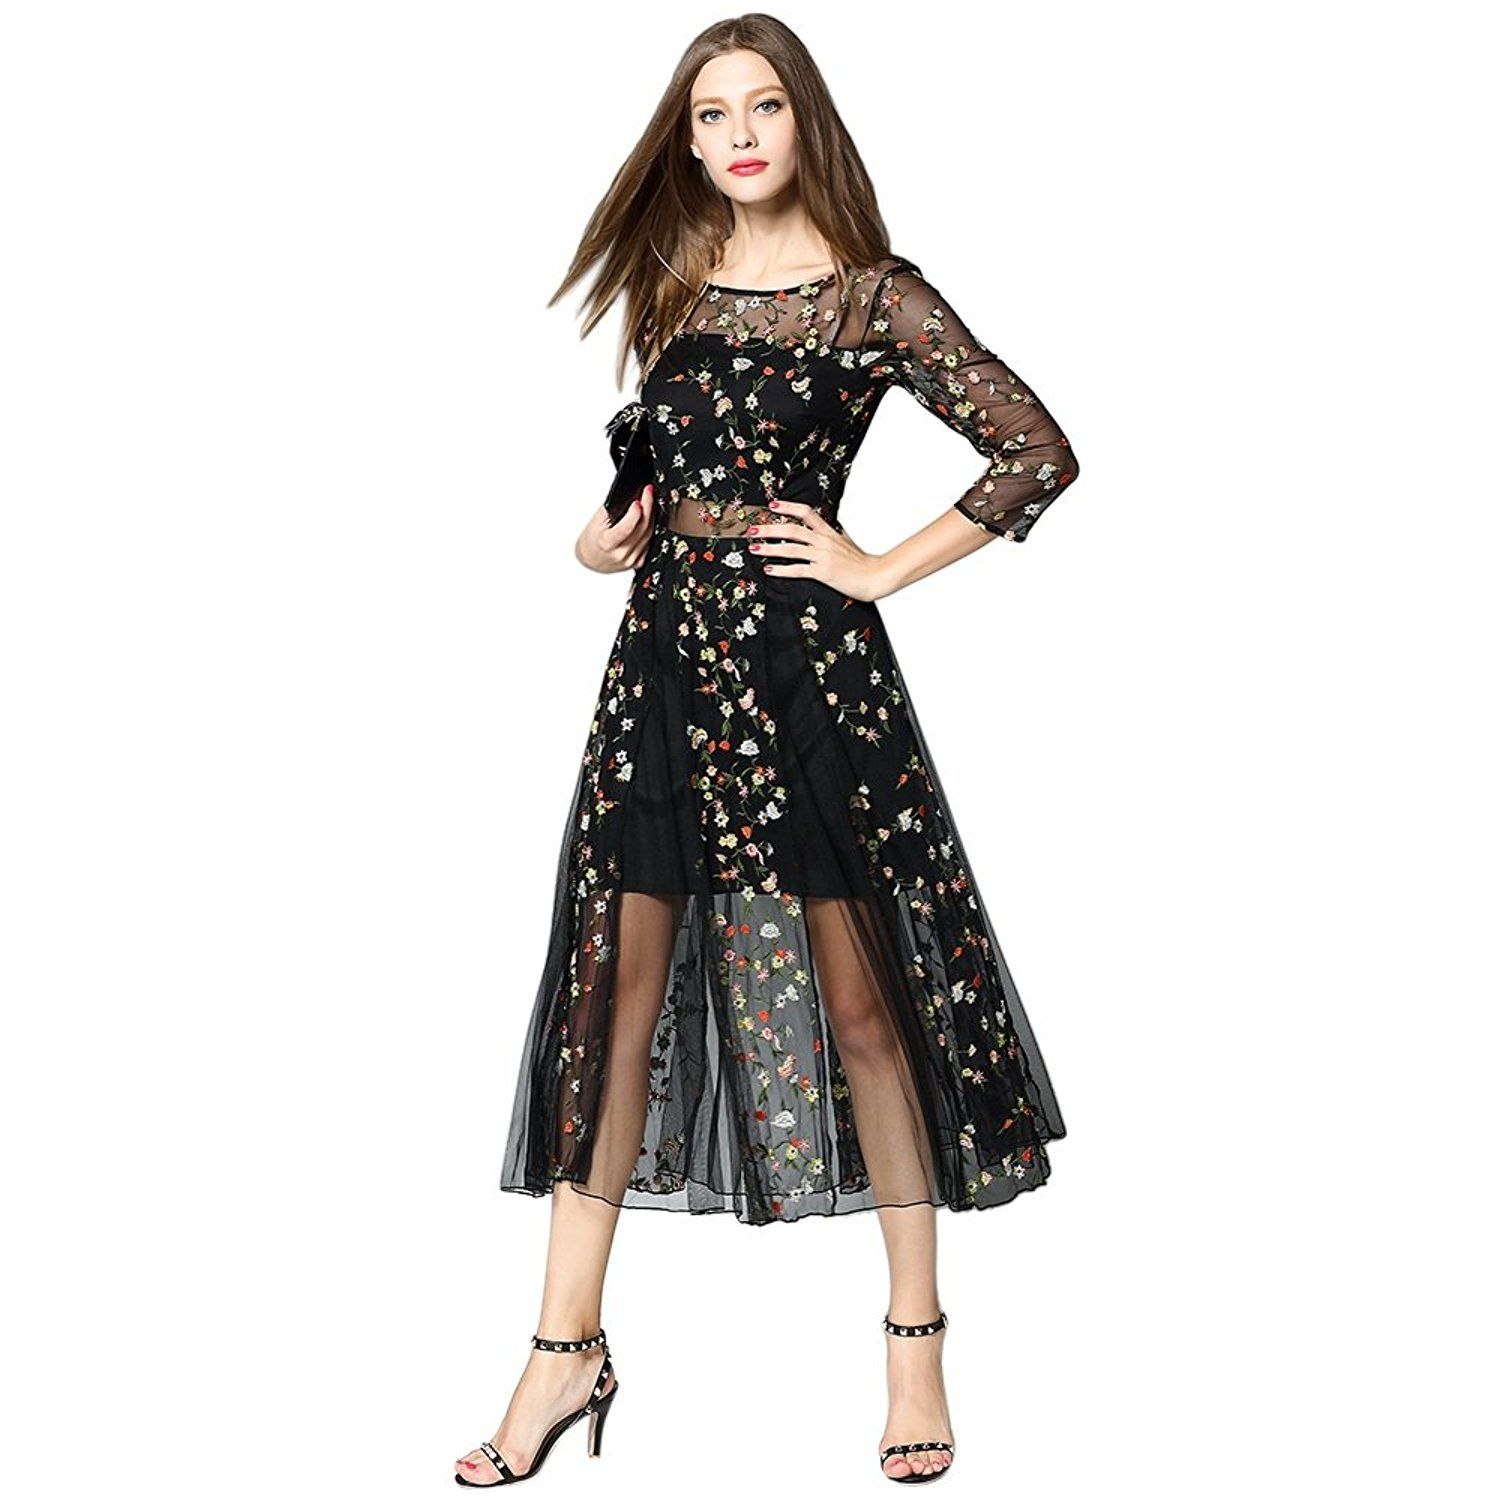 Dezzal womenus floral embroidered sheer evening cocktail dress at